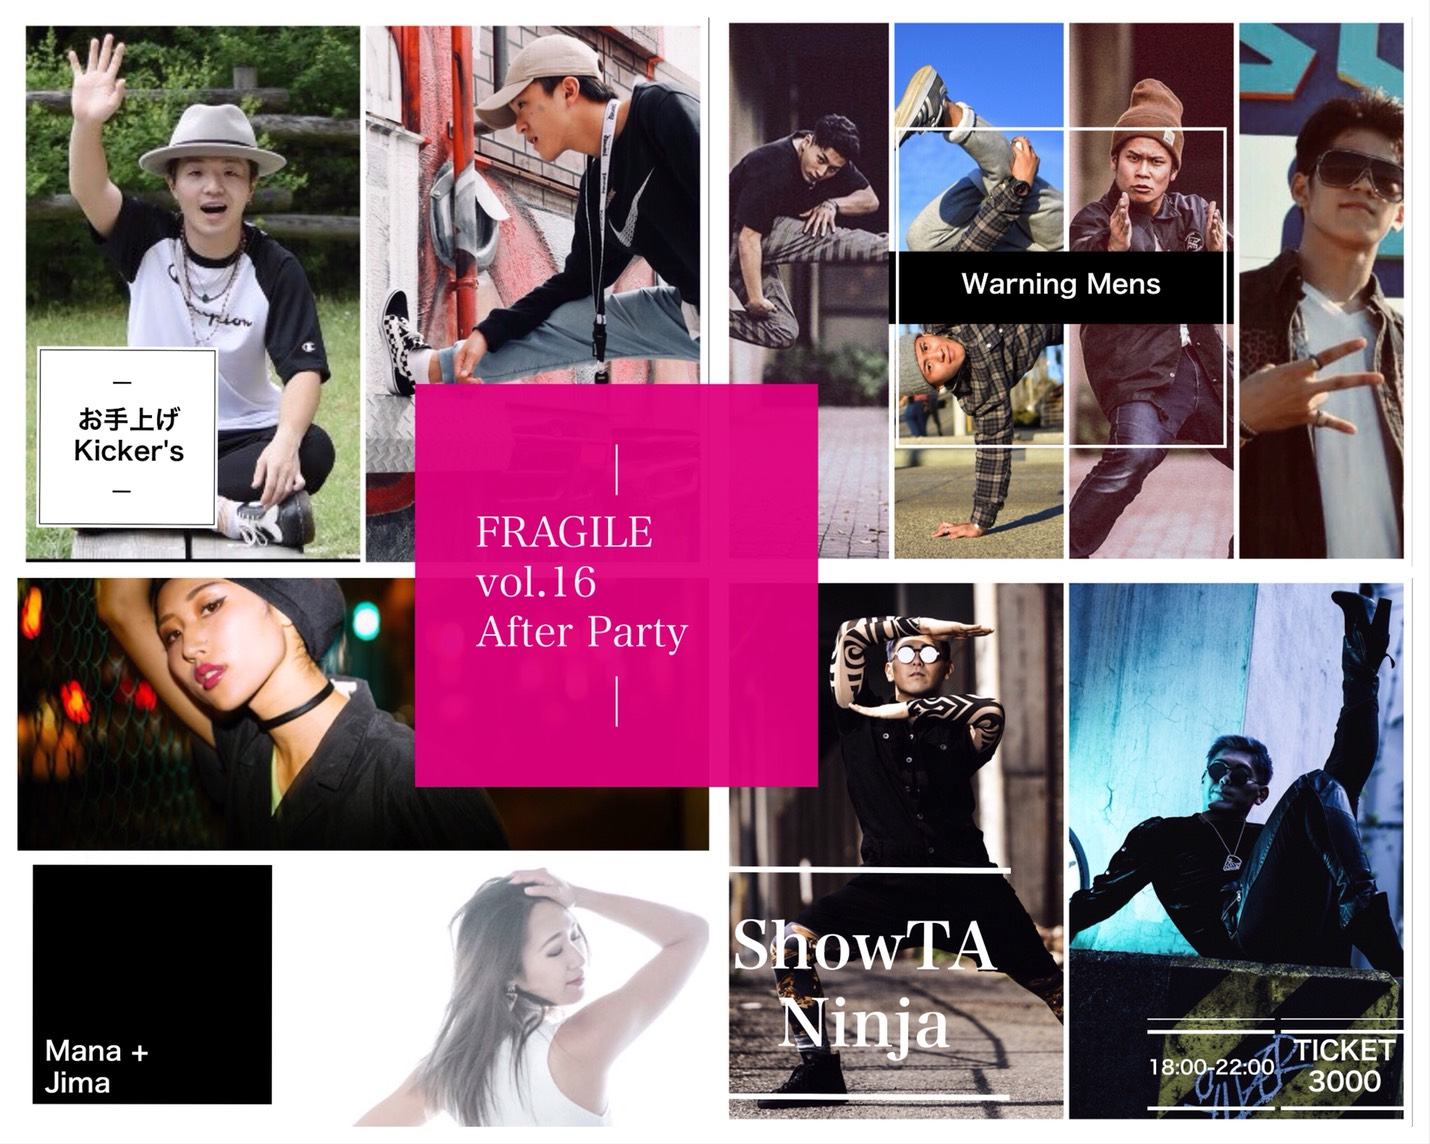 FRAGILE vol.16 After Party